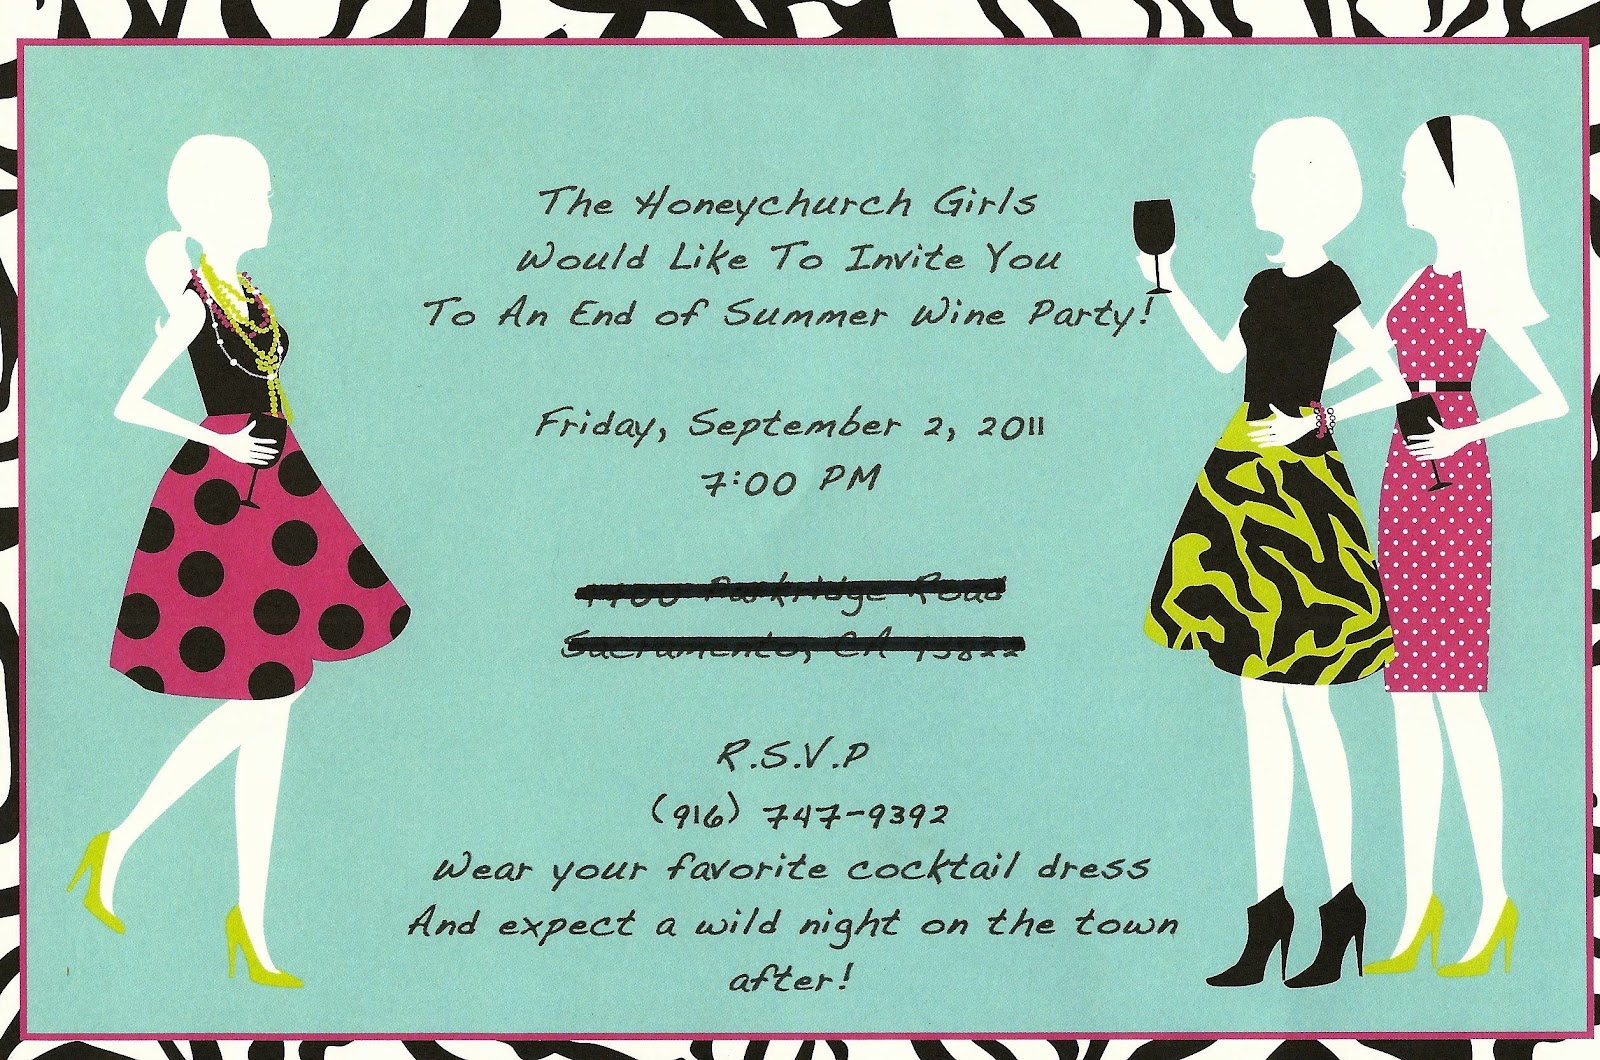 seasonal-party-invitations-stylish-summer-party-invitation-design-idea-with-light-blue-background-white-girls-with-pink-dress-with-polka-dot-motive-and-black-letters-cheerful-summer-part